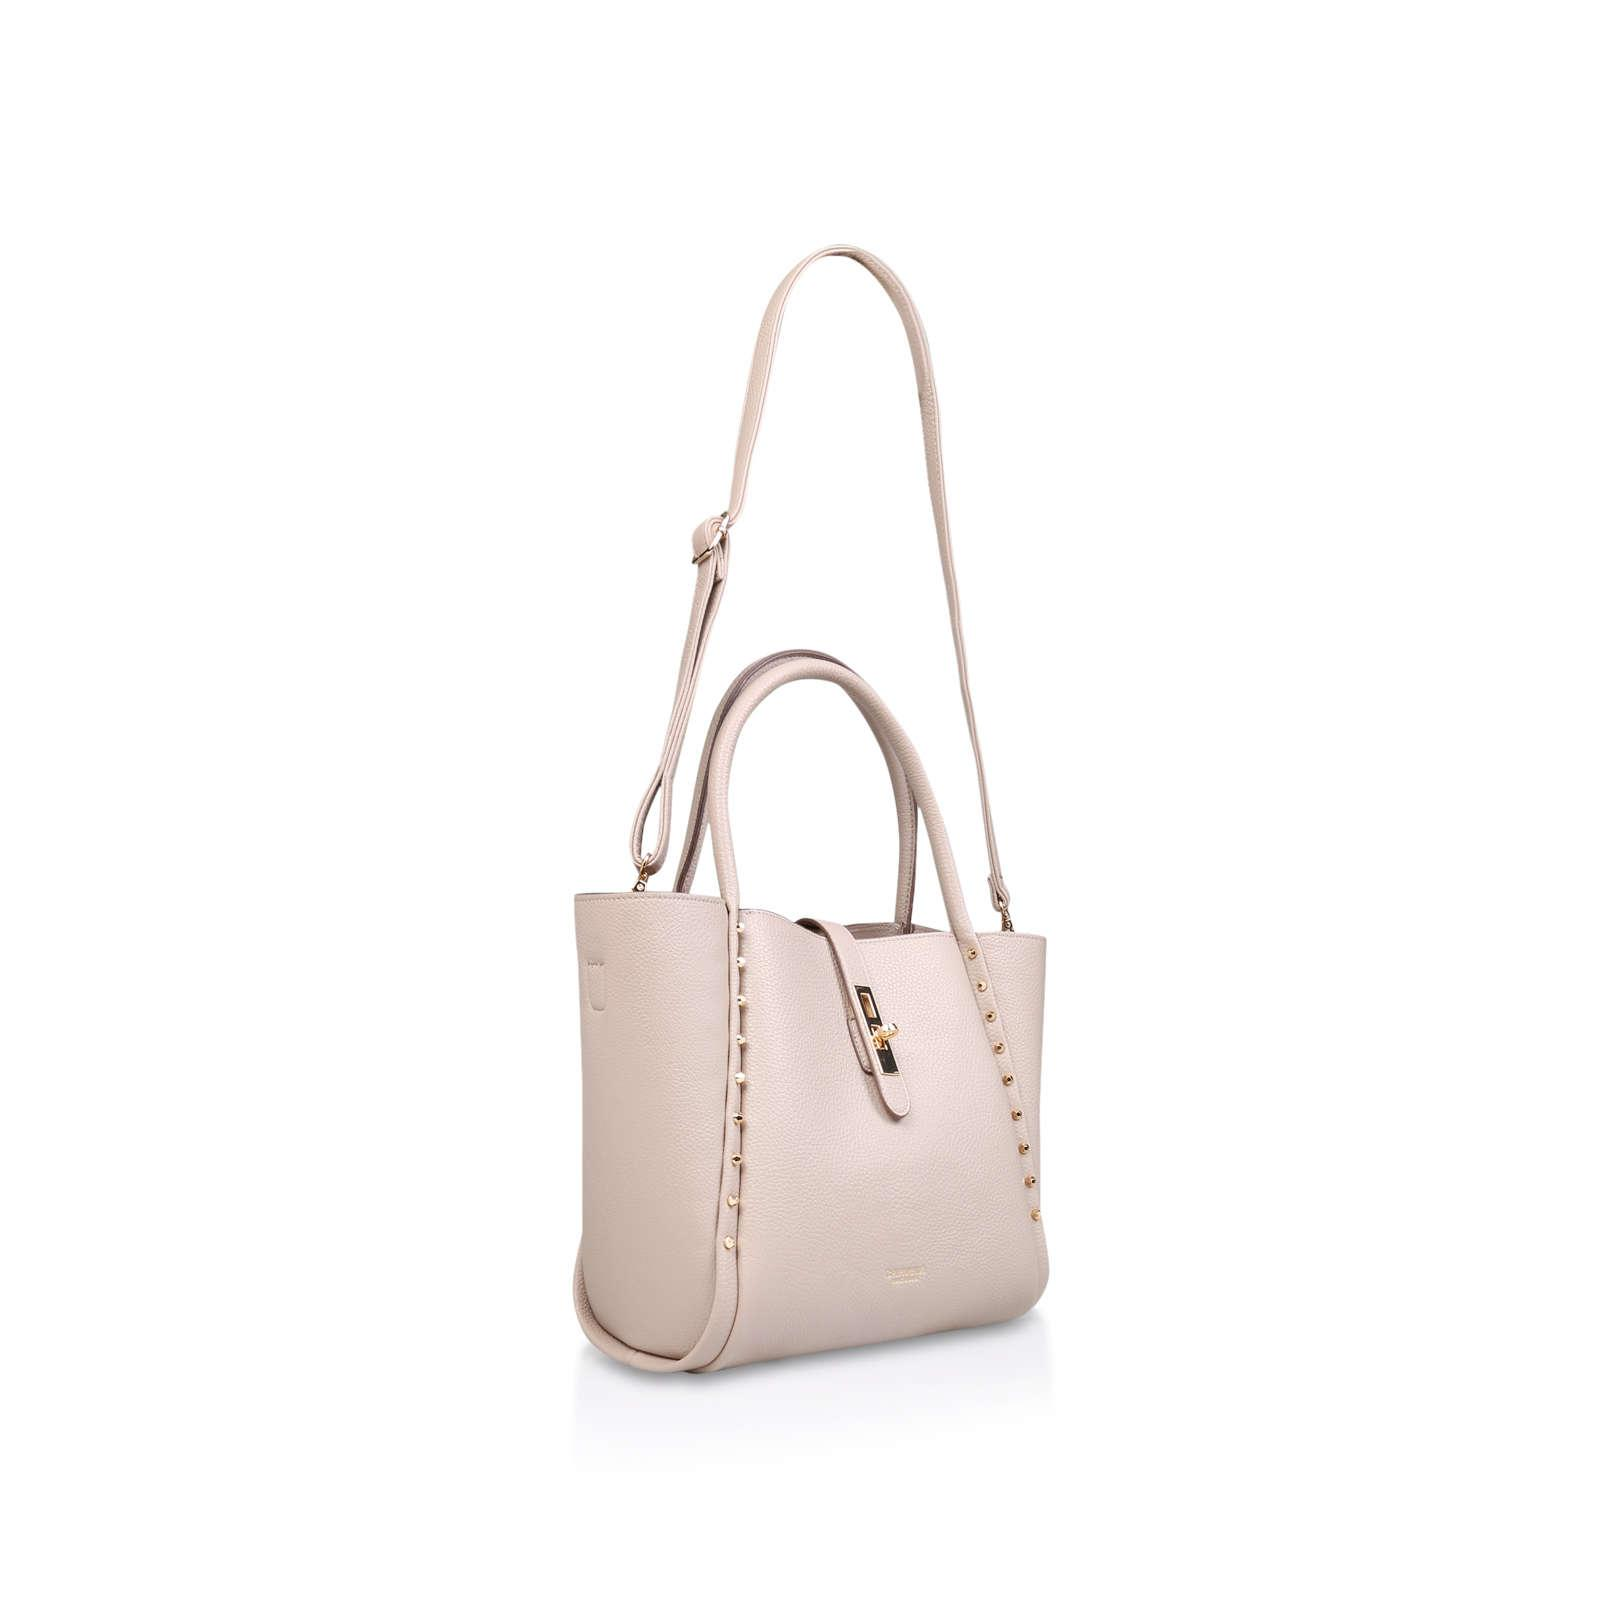 Carvela Kurt Geiger Synthetic Shar Studded Soft Tote No Heel Handbags Nude in Natural